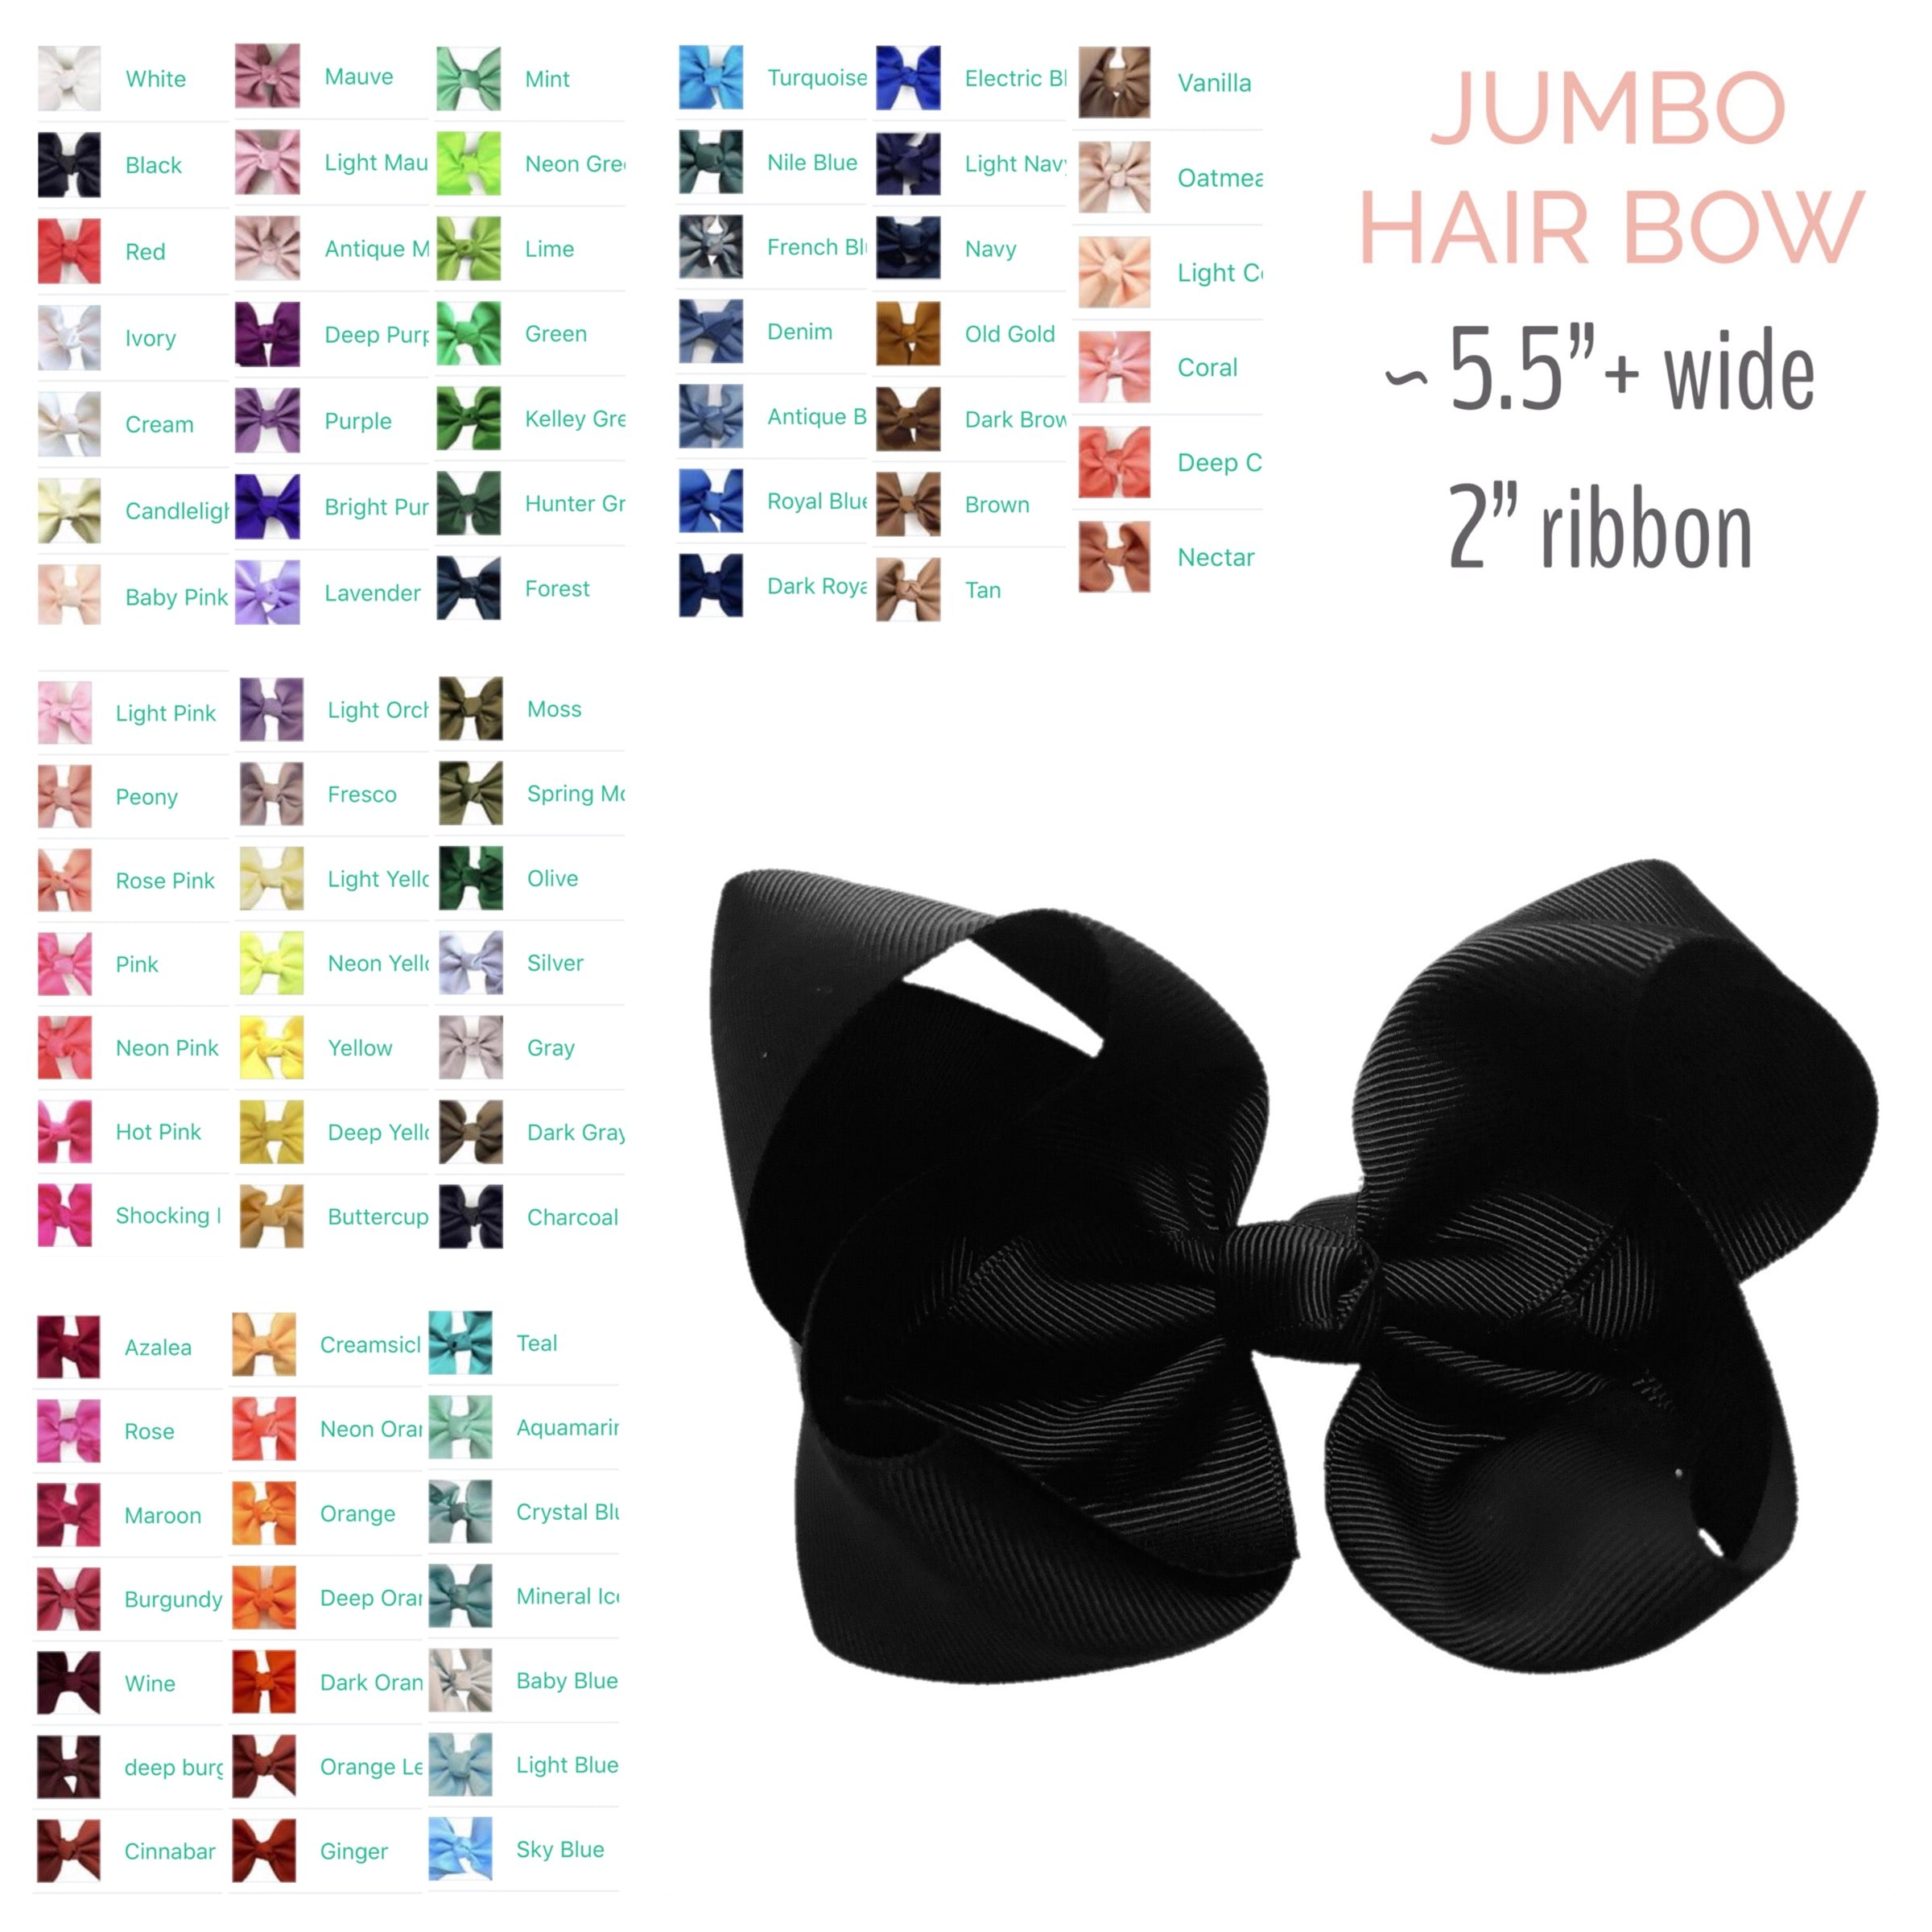 Hair Bow by Color - Jumbo - Cutie Bowtutie